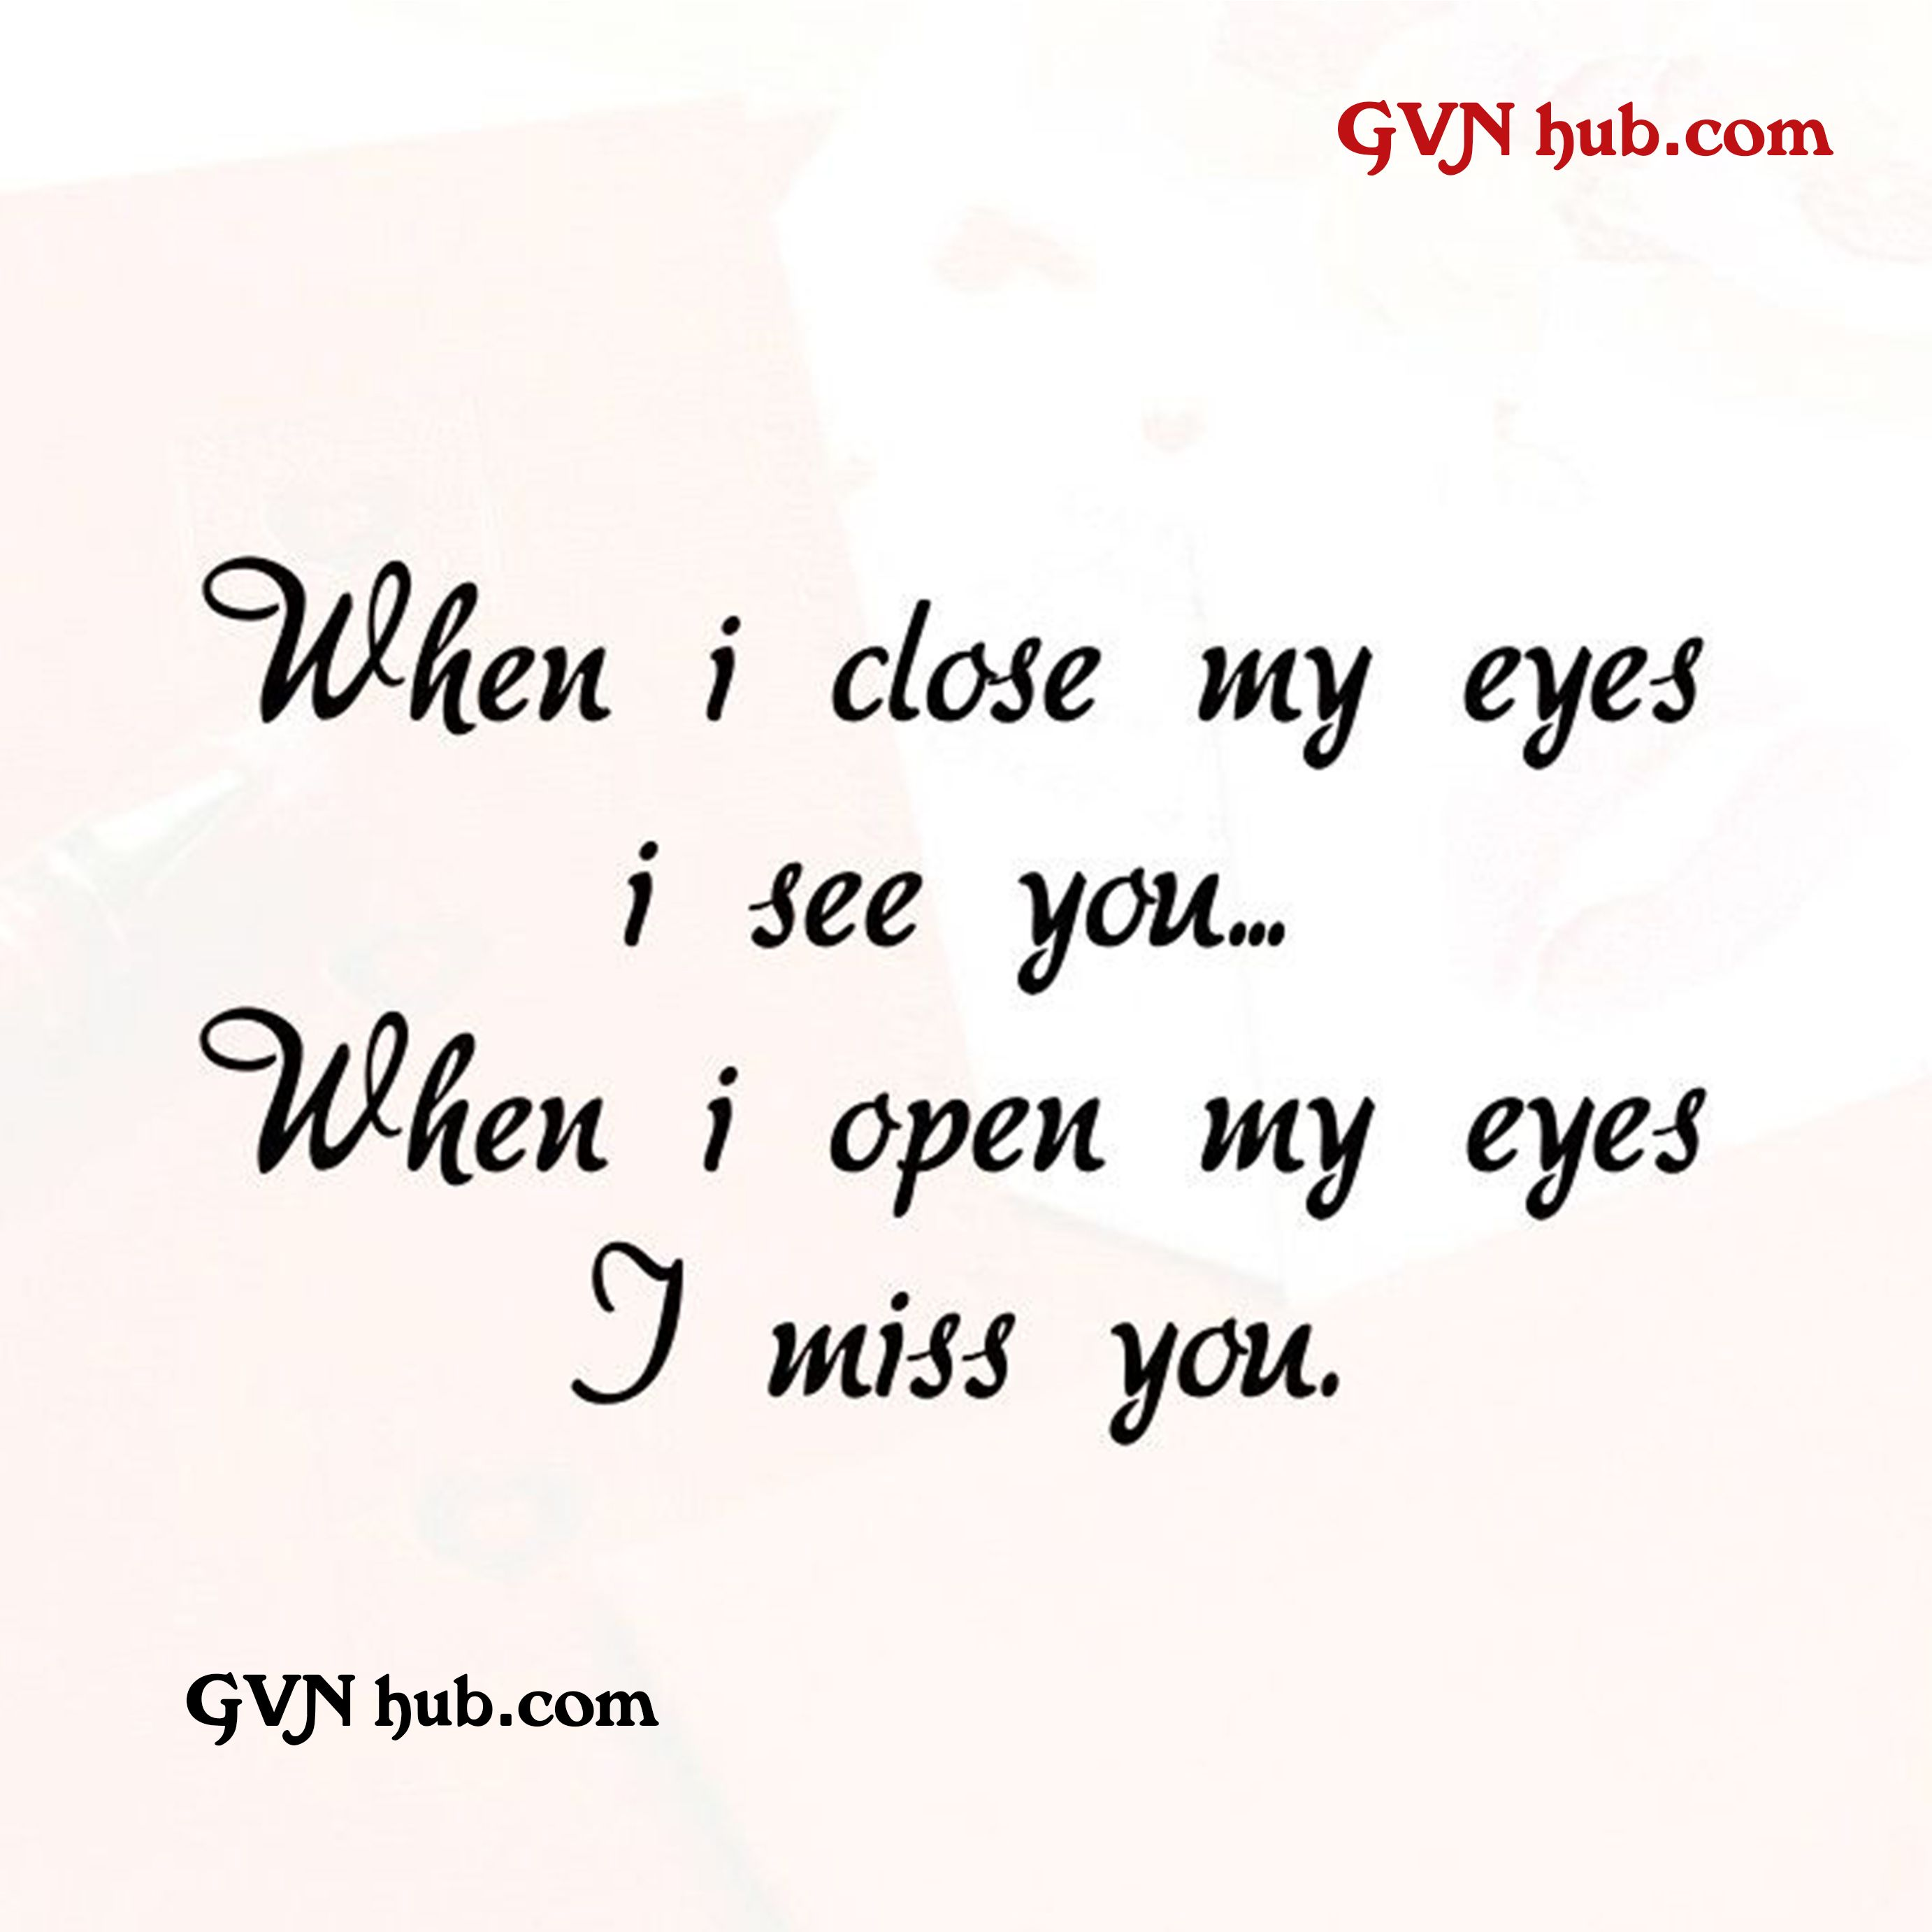 15 Best Heart Touching Miss You Quotes Gvn Hub Miss You Quotes